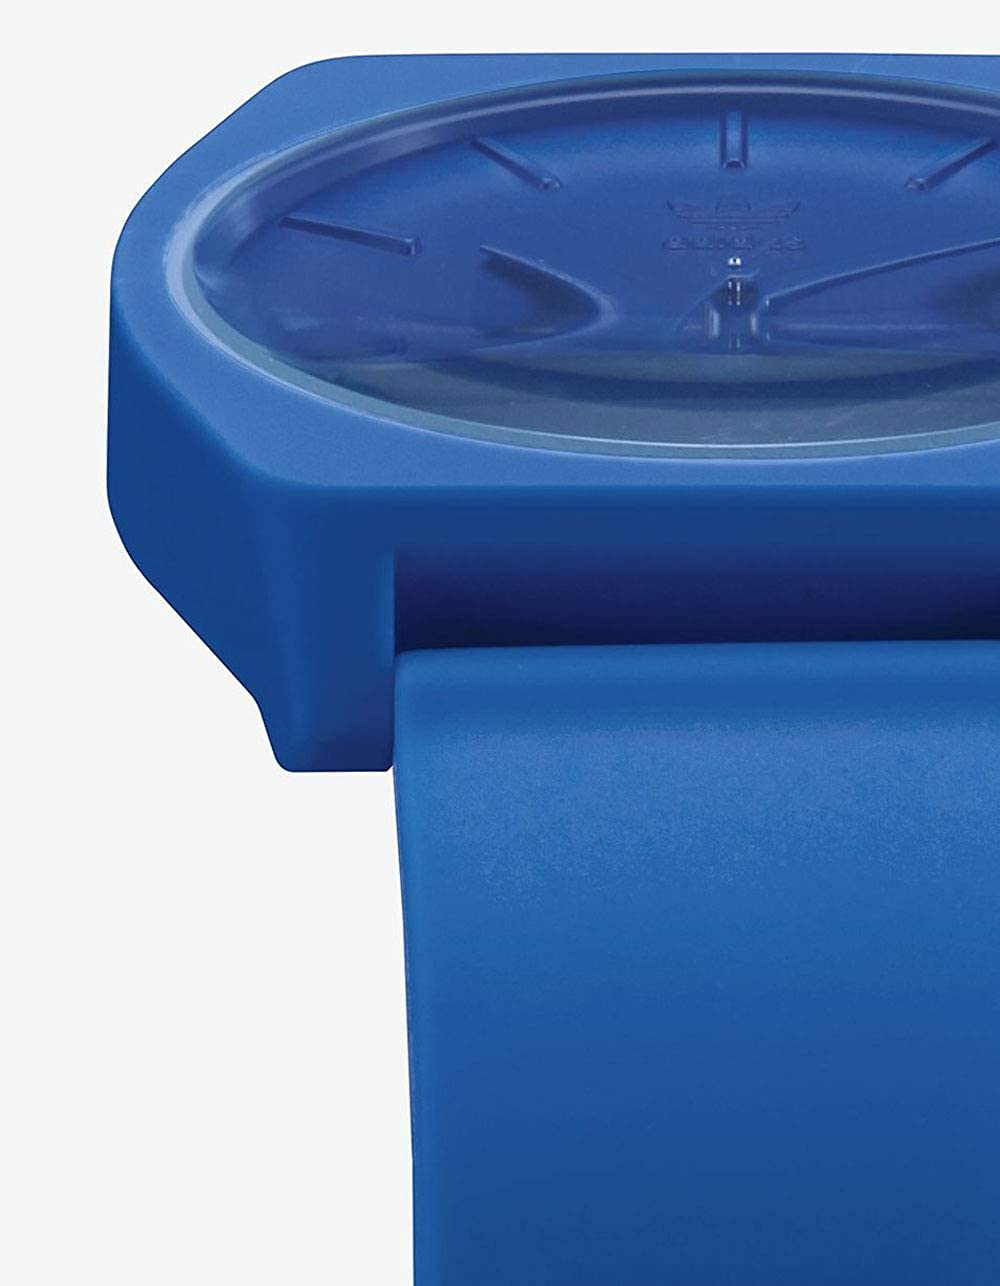 adidas Watches Process_SP1. Silicone Strap, 20mm Width (38 mm). All Blue